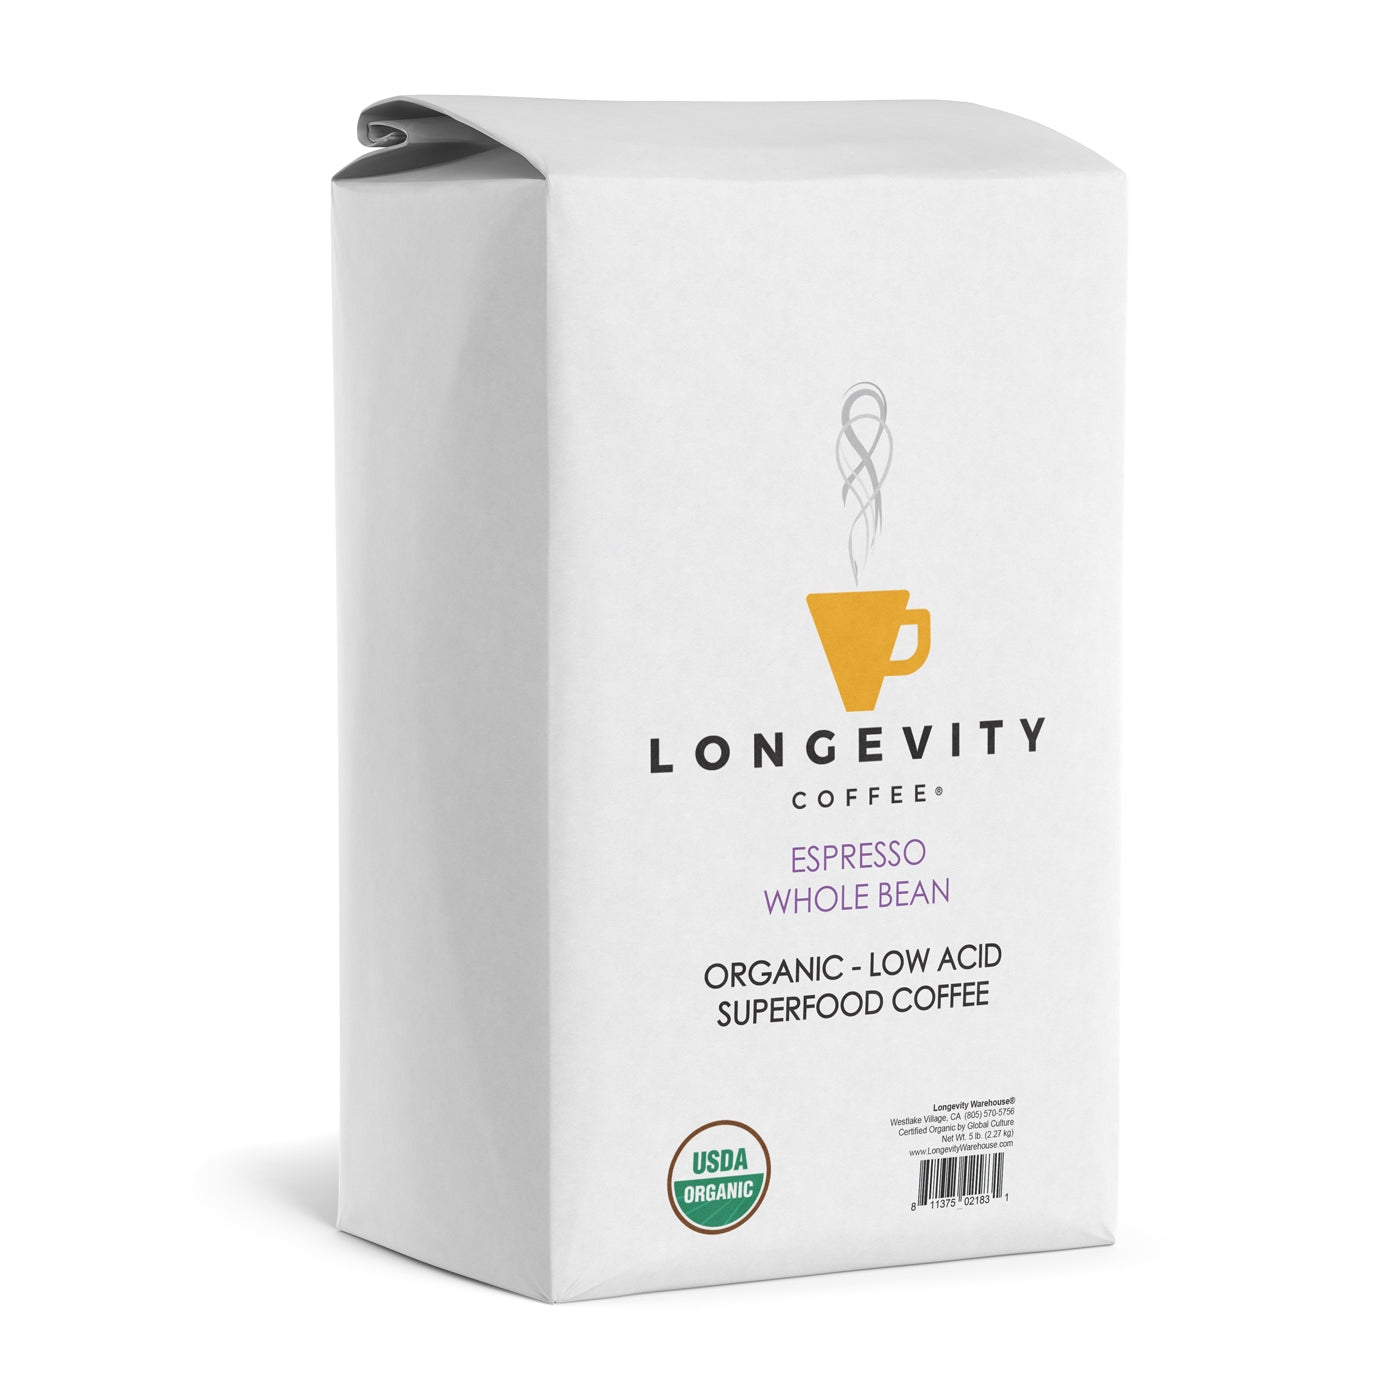 Longevity Coffee ESPRESSO Medium Roast, 5 lb BULK BAG WHOLE BEANS